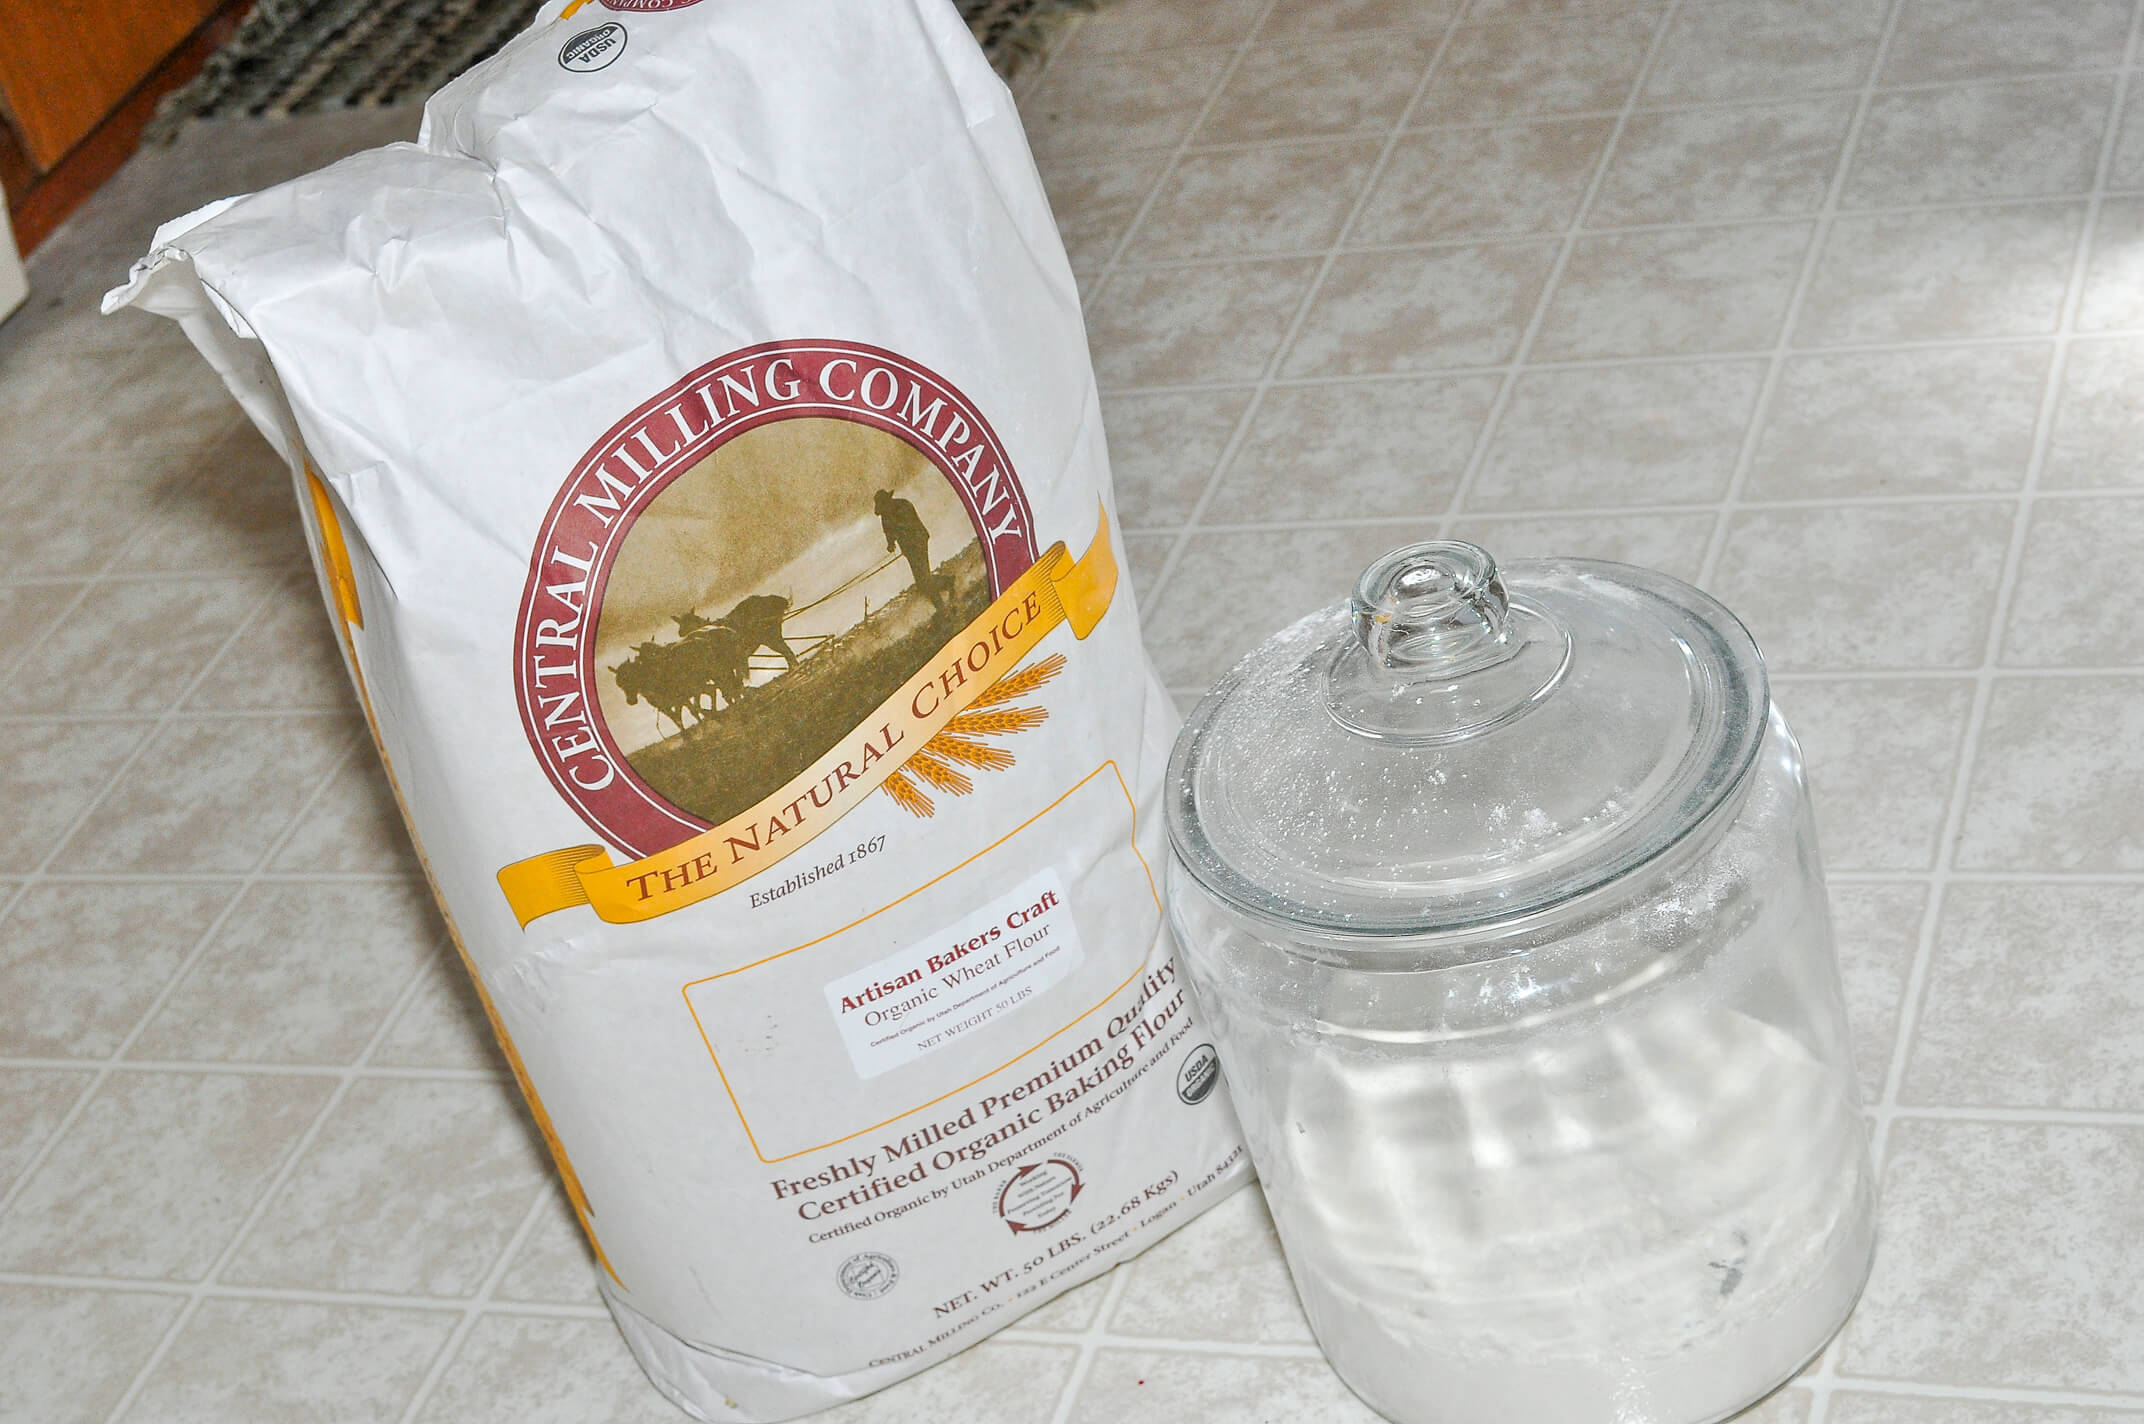 Plotting My Next Flour Purchase – Central Milling Here I Come!